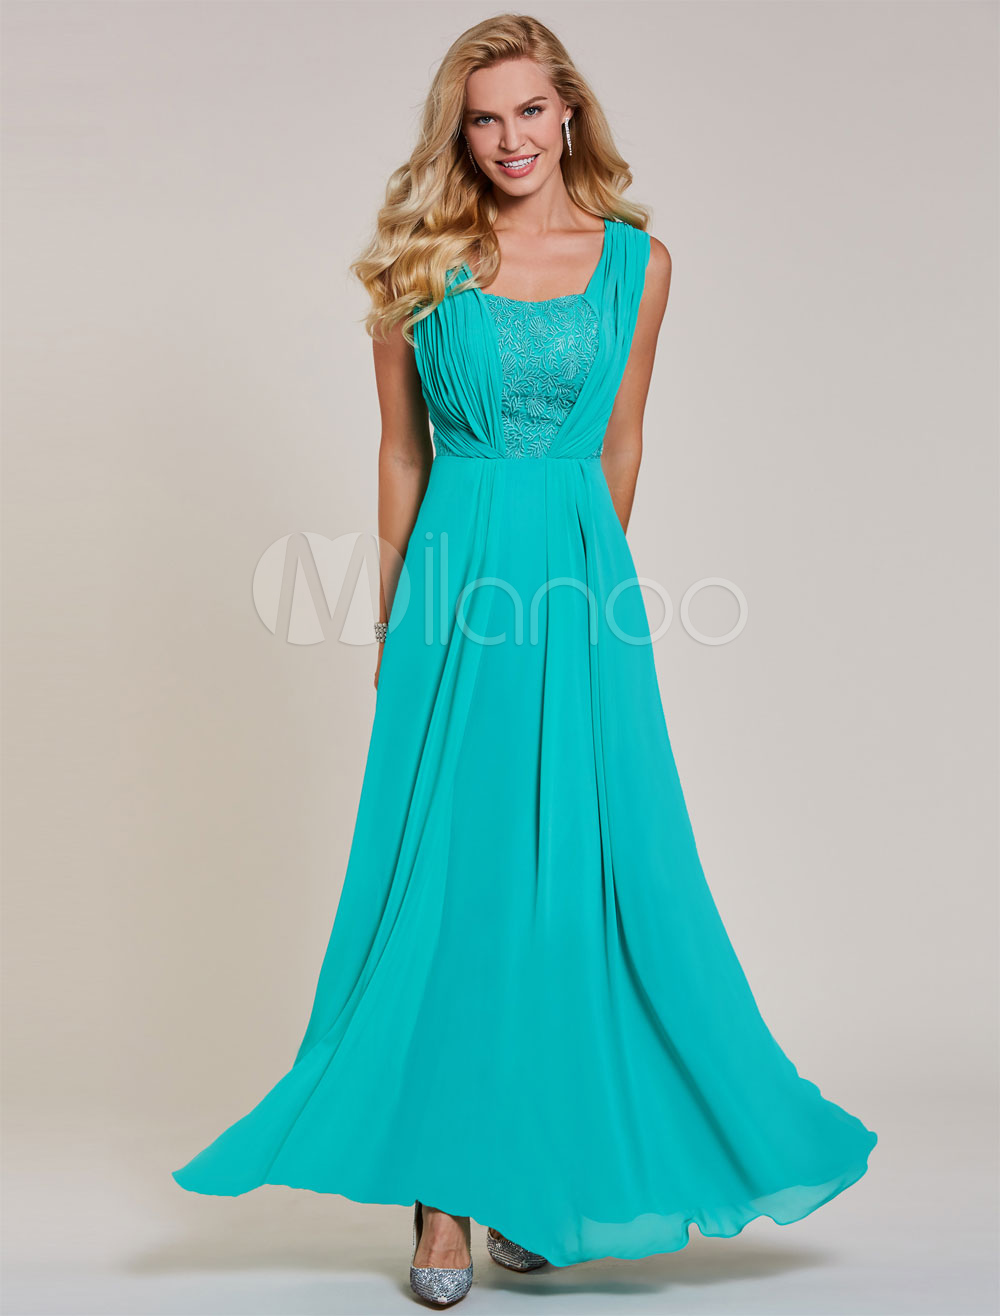 Long Prom Dresses Blue Green Chiffon Square Neck Lace Pleated Floor Length Formal Party Dress (Wedding Cheap Party Dress) photo